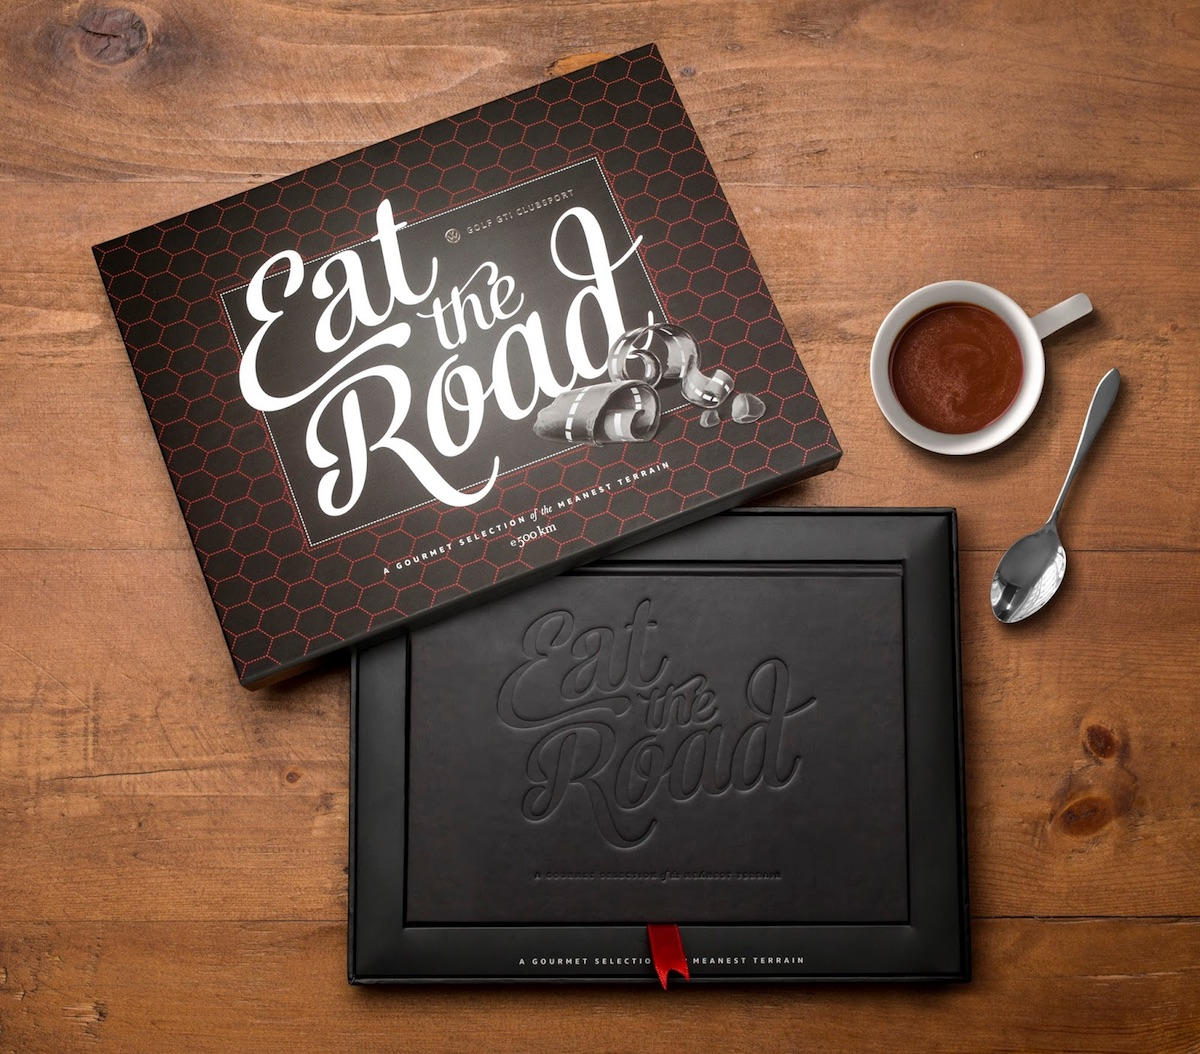 eat the road box design